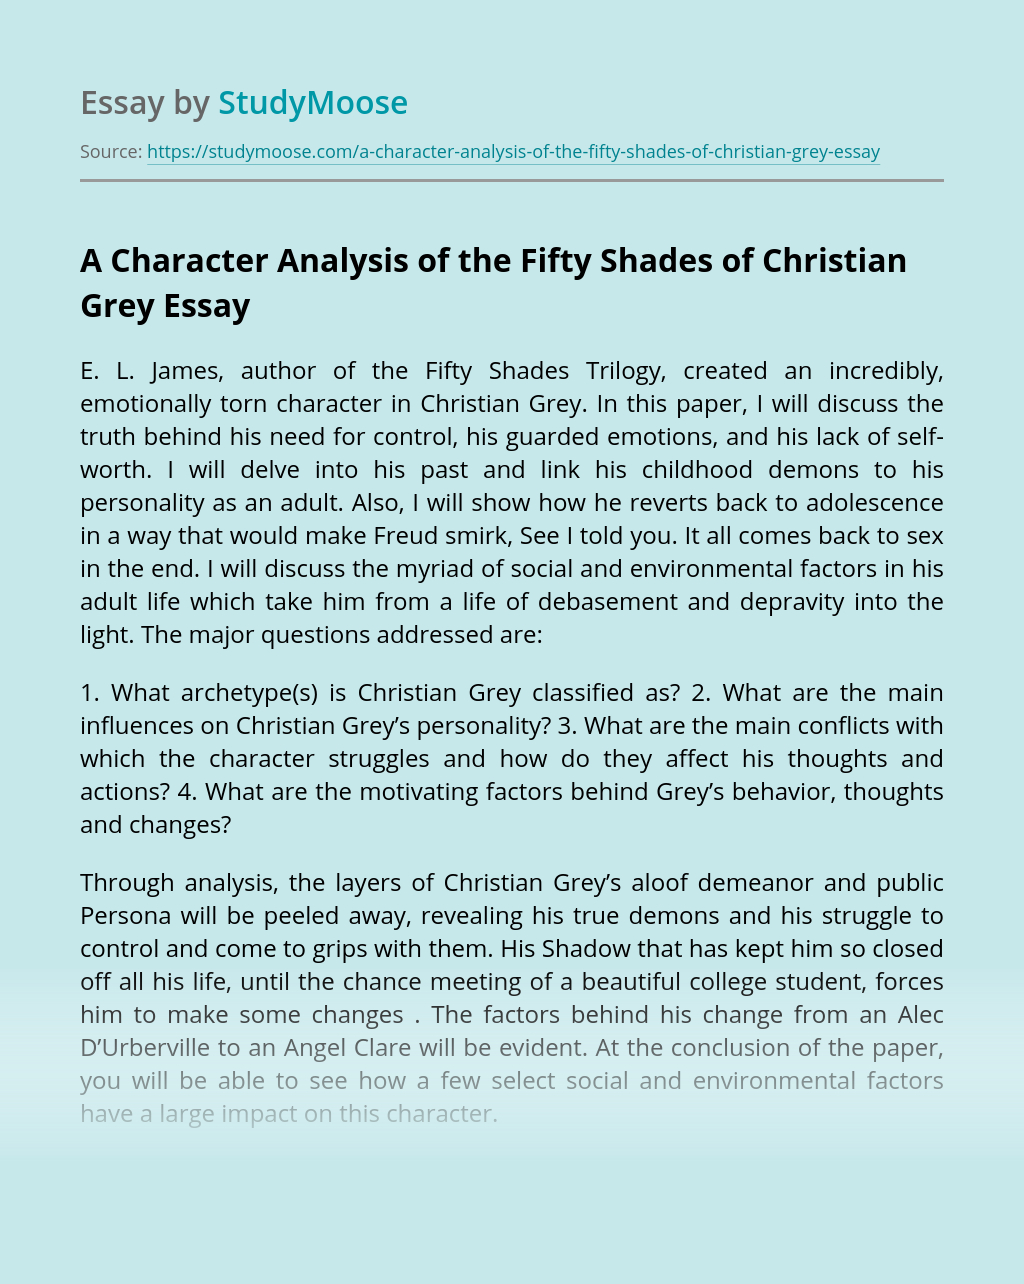 A Character Analysis of the Fifty Shades of Christian Grey